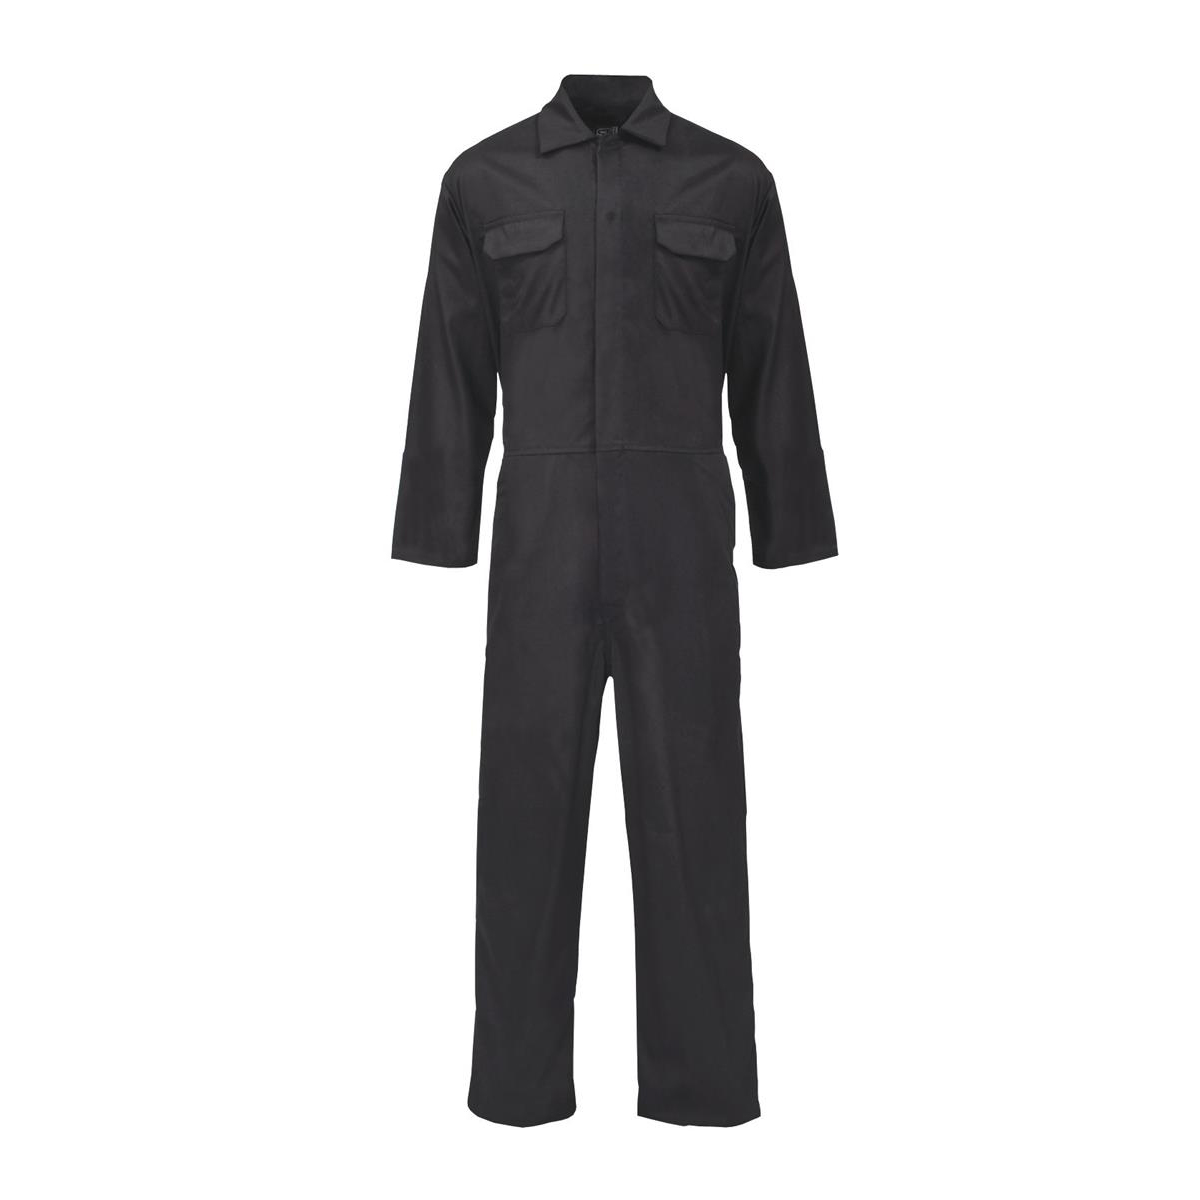 Coverall Basic with Popper Front Opening Polycotton XLarge Black Ref RPCBSBL48 *Approx 3 Day Leadtime*